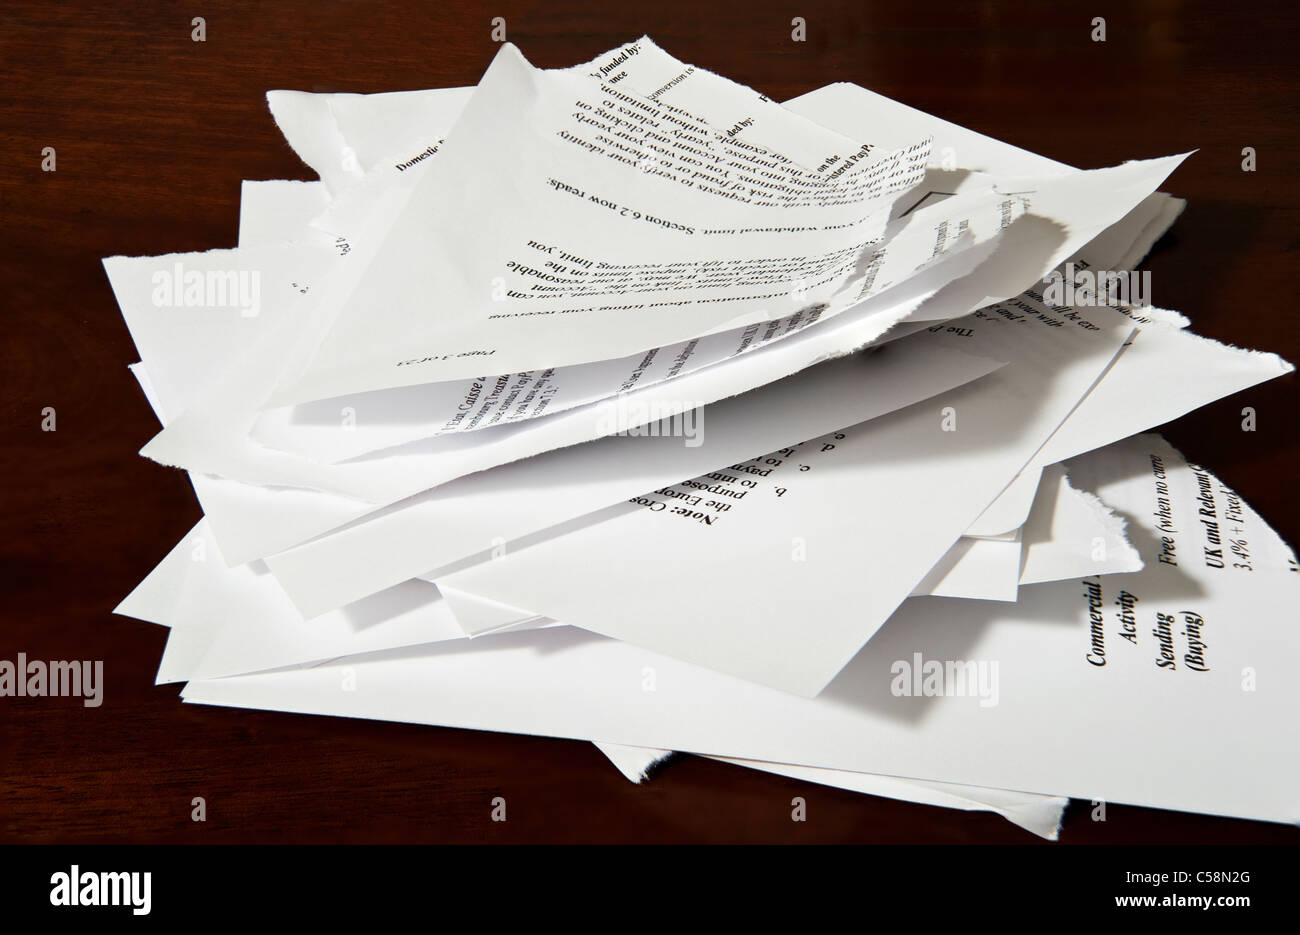 A torn up document  or contract - Stock Image